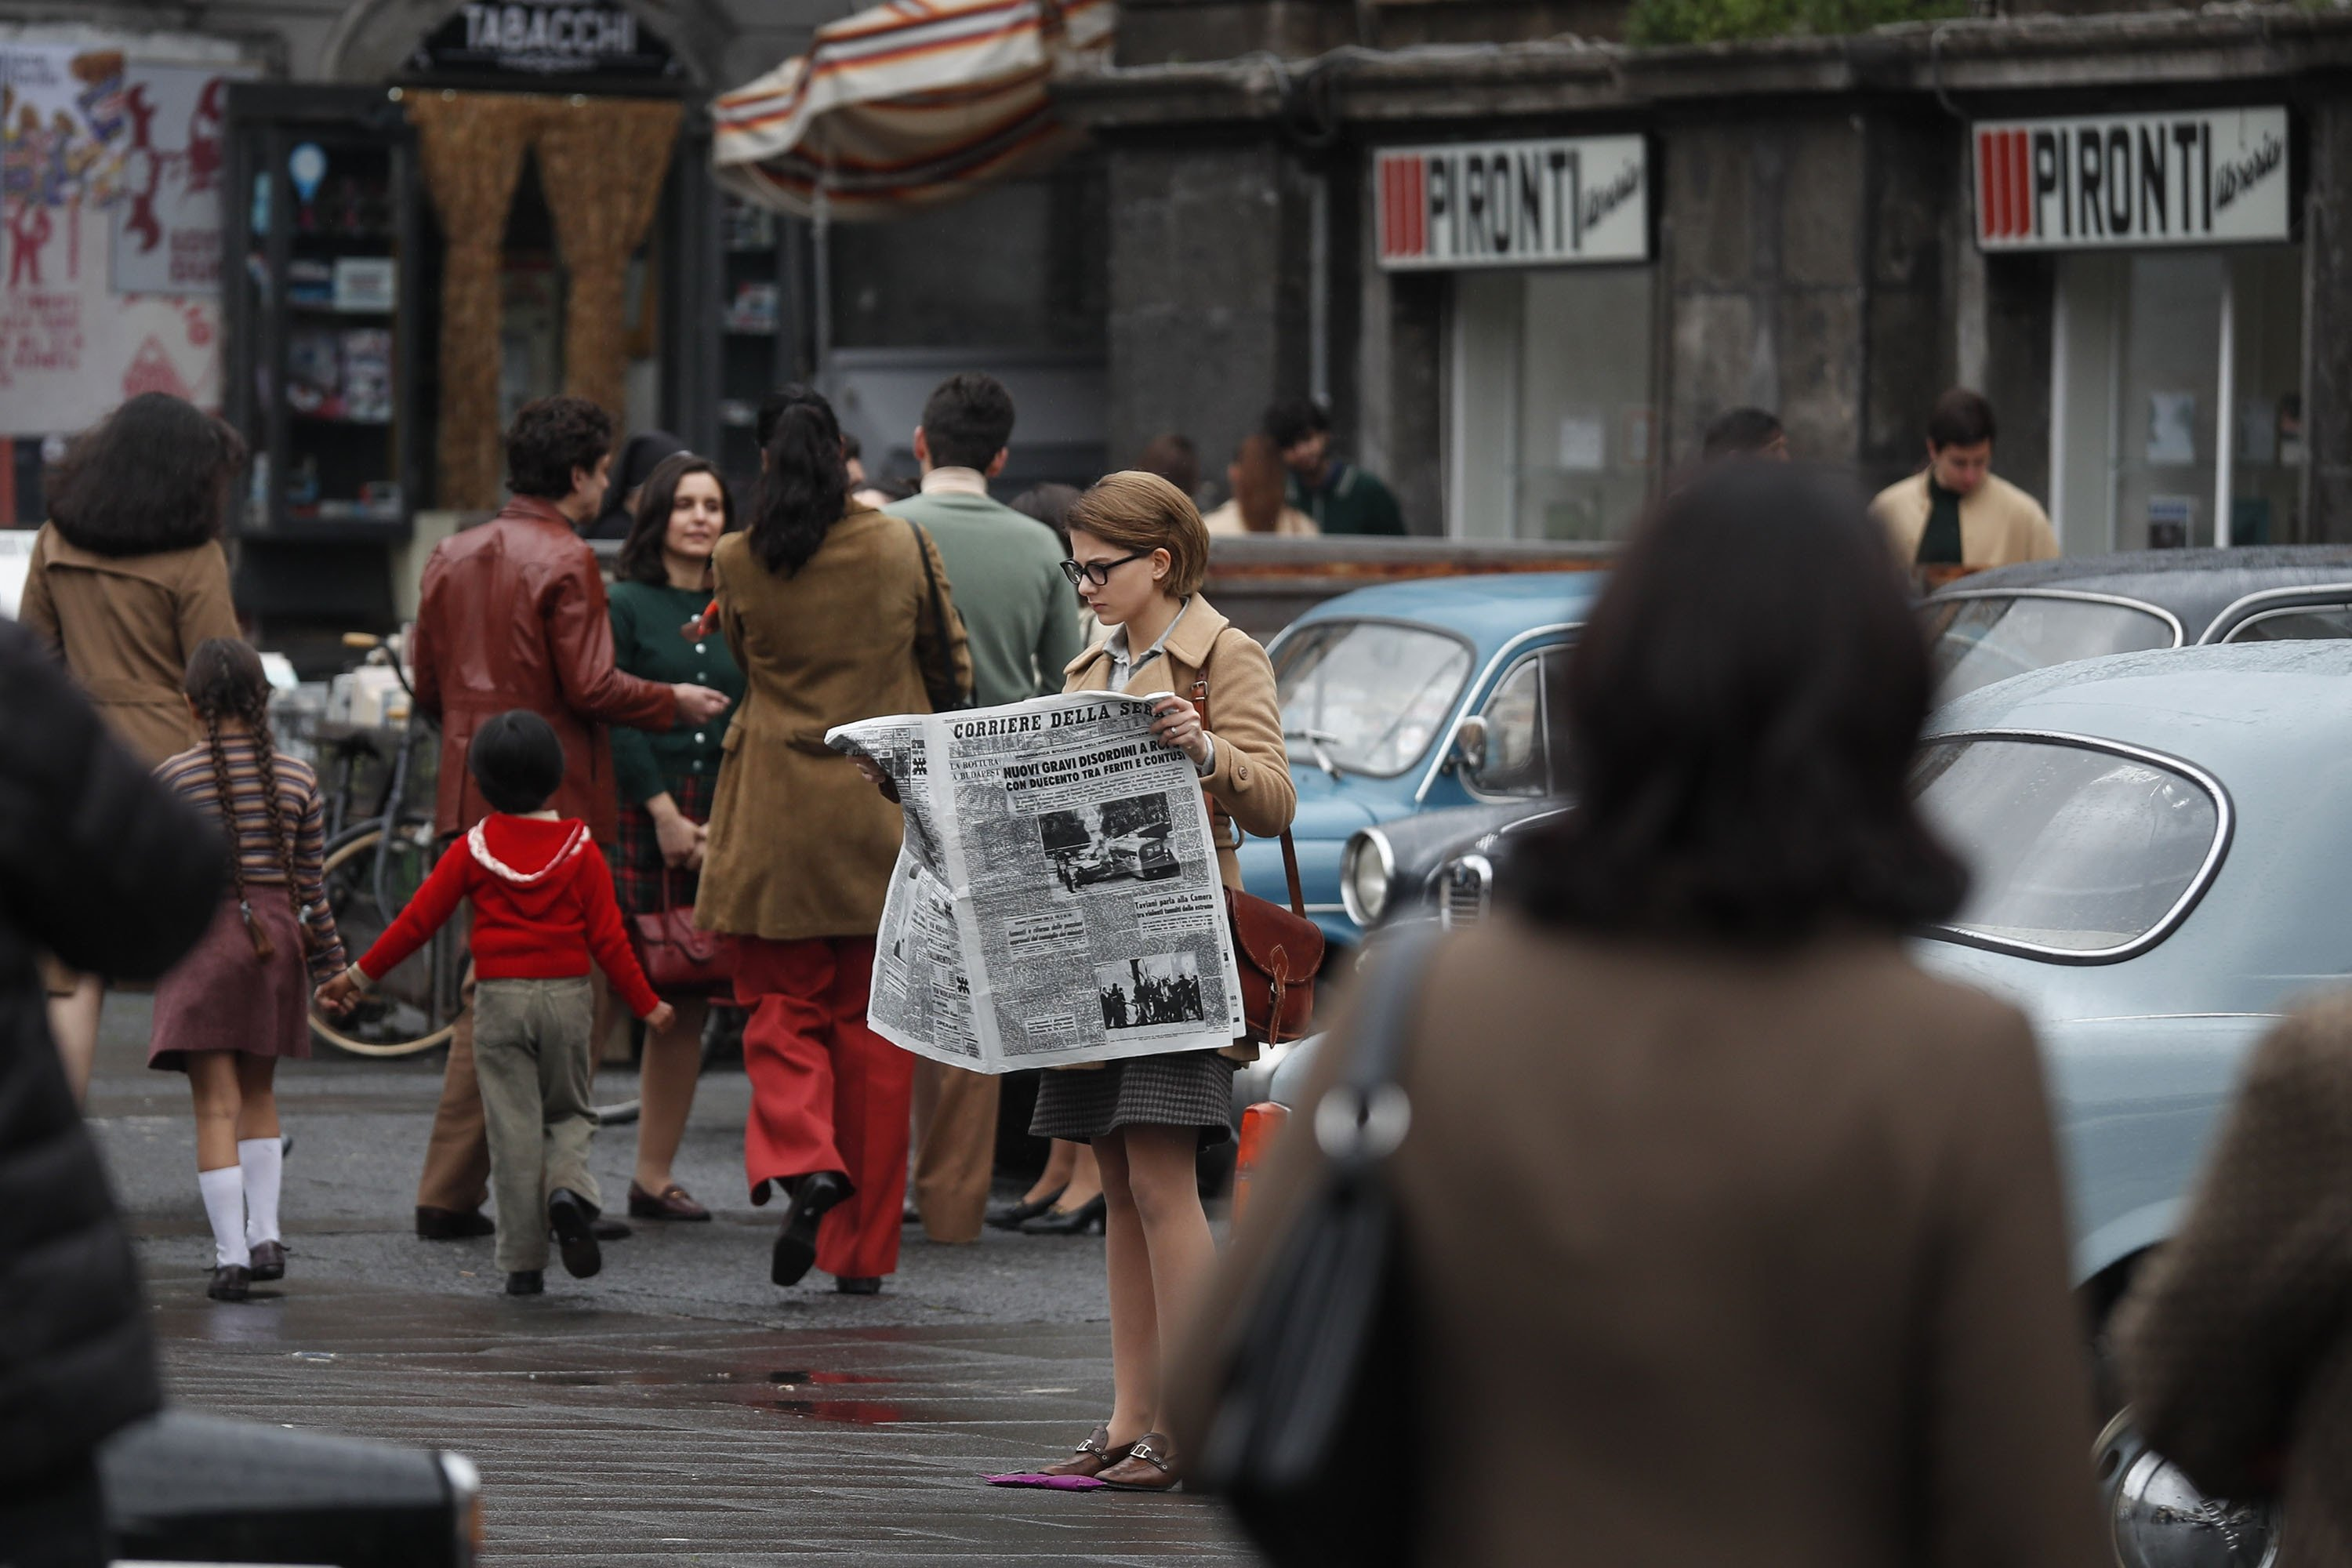 ActressMargherita Mazzucco (C) reads a newspaper on the streeton the set of the TV series 'My Brilliant Friend' ('L'amica geniale') based on the novels of Elena Ferrante, in Naples, Italy, Jan. 13, 2021. (Getty Images)